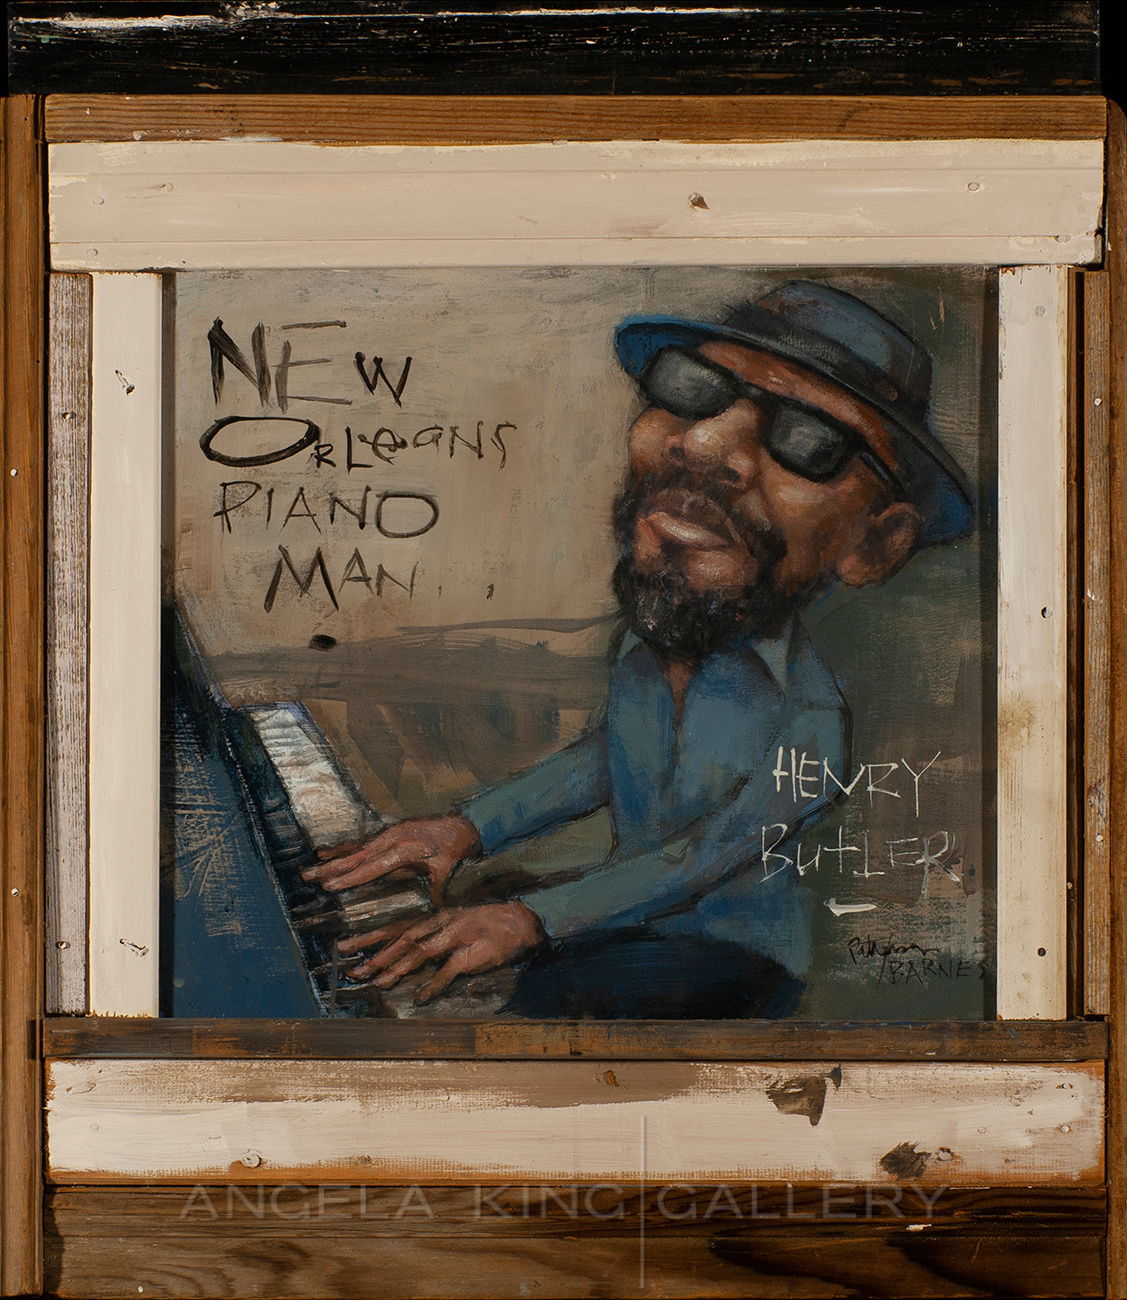 Henry Butler - New Orleans Piano Man